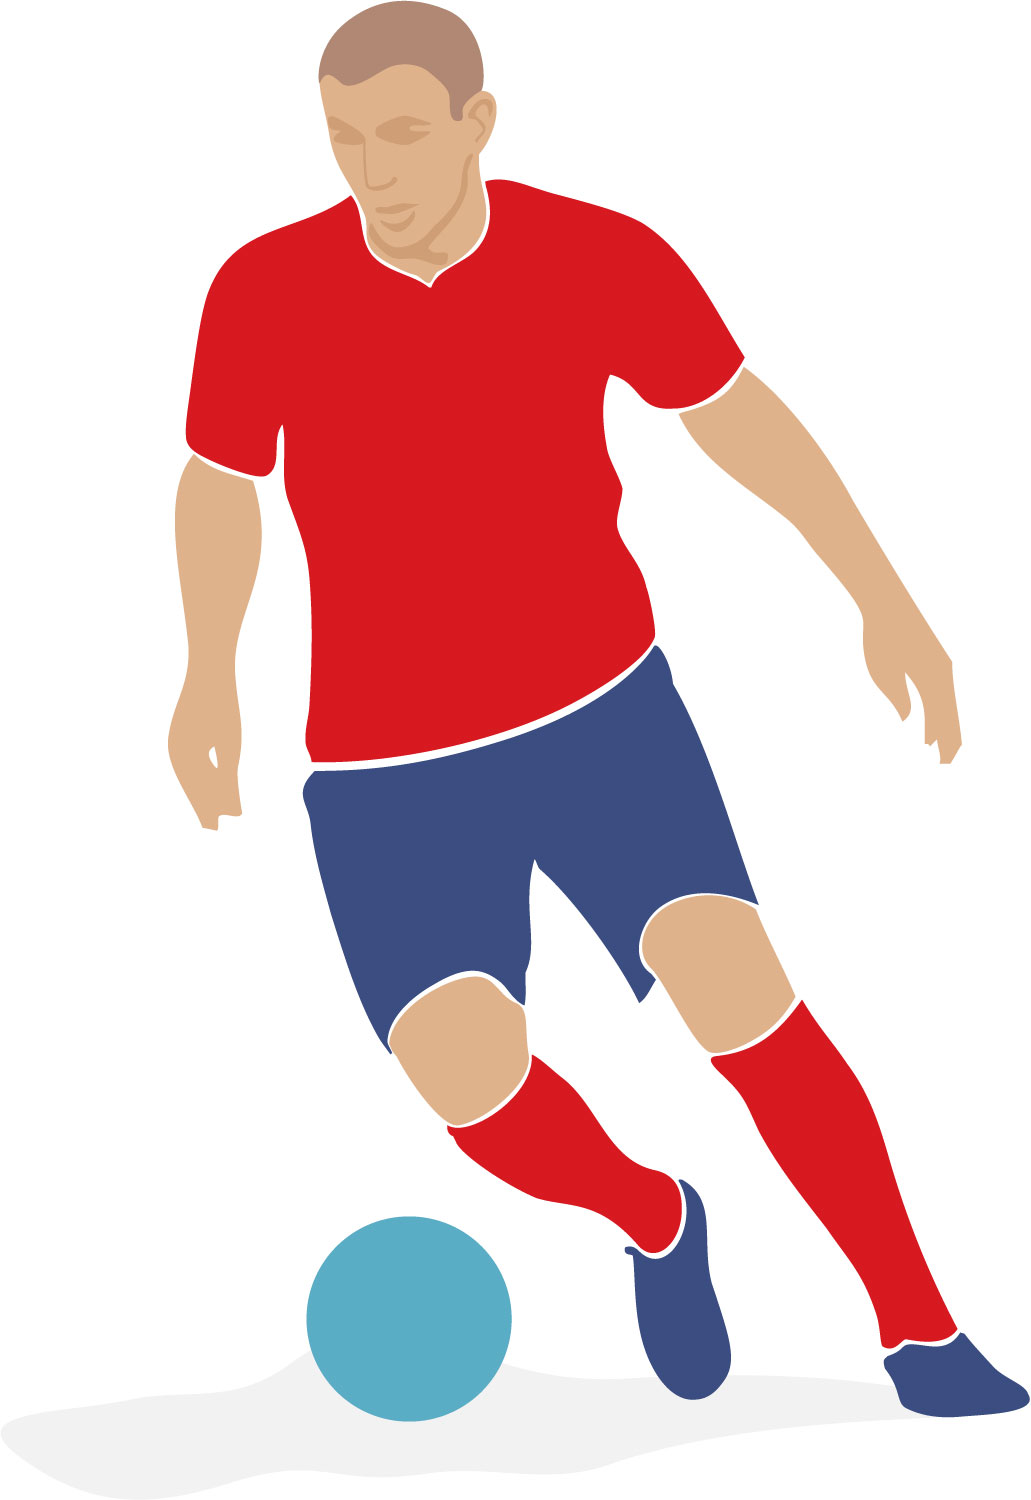 Clipart player image black and white Free Soccer Player Cliparts, Download Free Clip Art, Free Clip Art ... image black and white